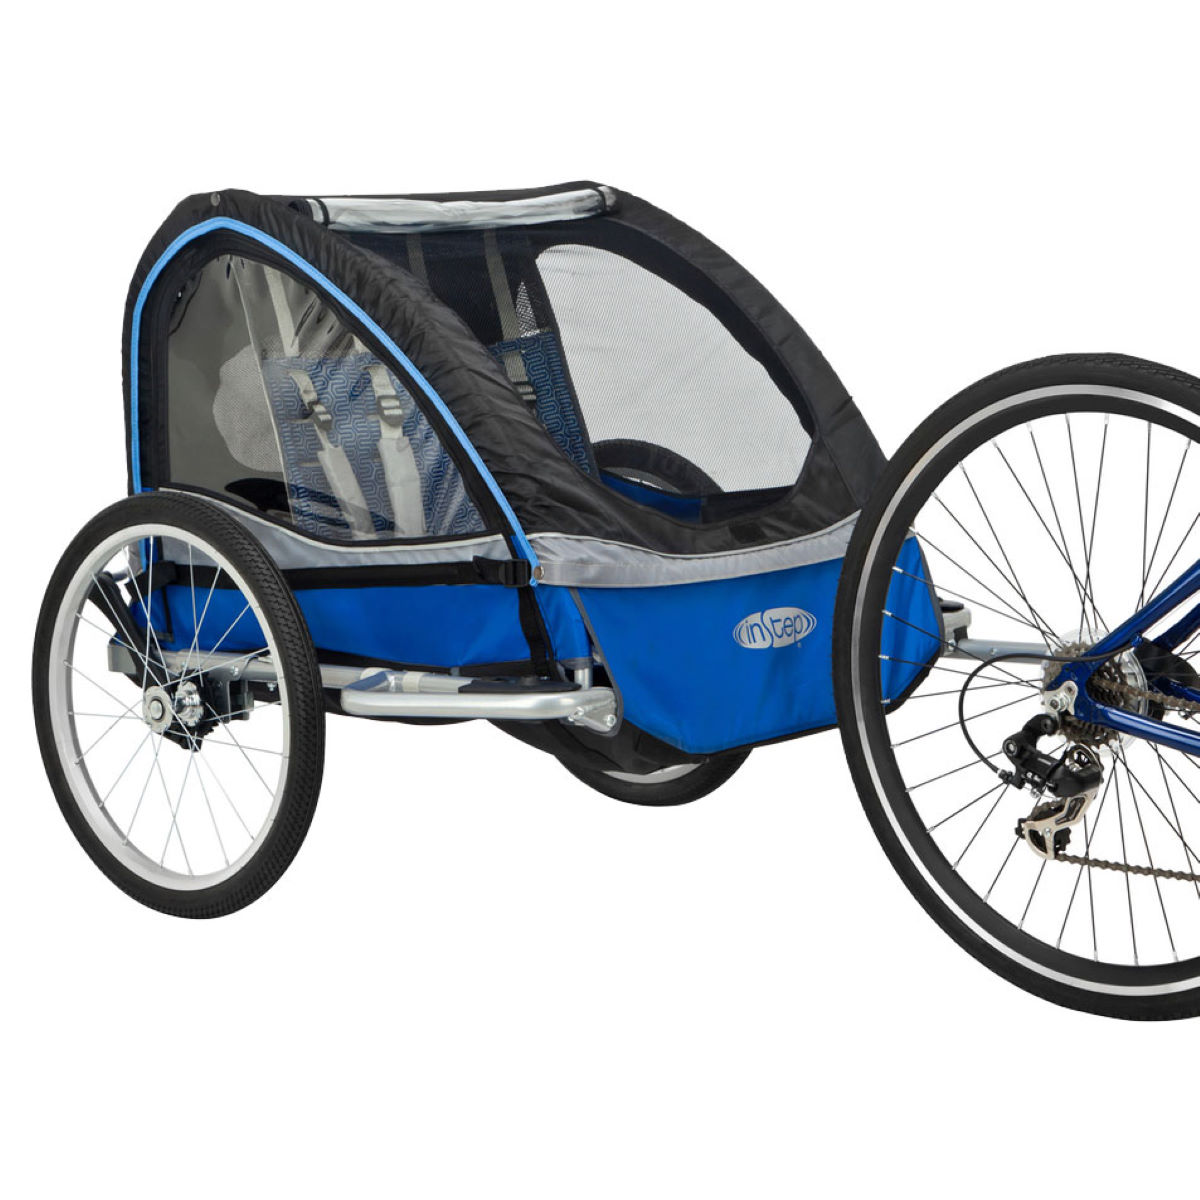 InStep Rocket 2 Twin Bicycle Trailer